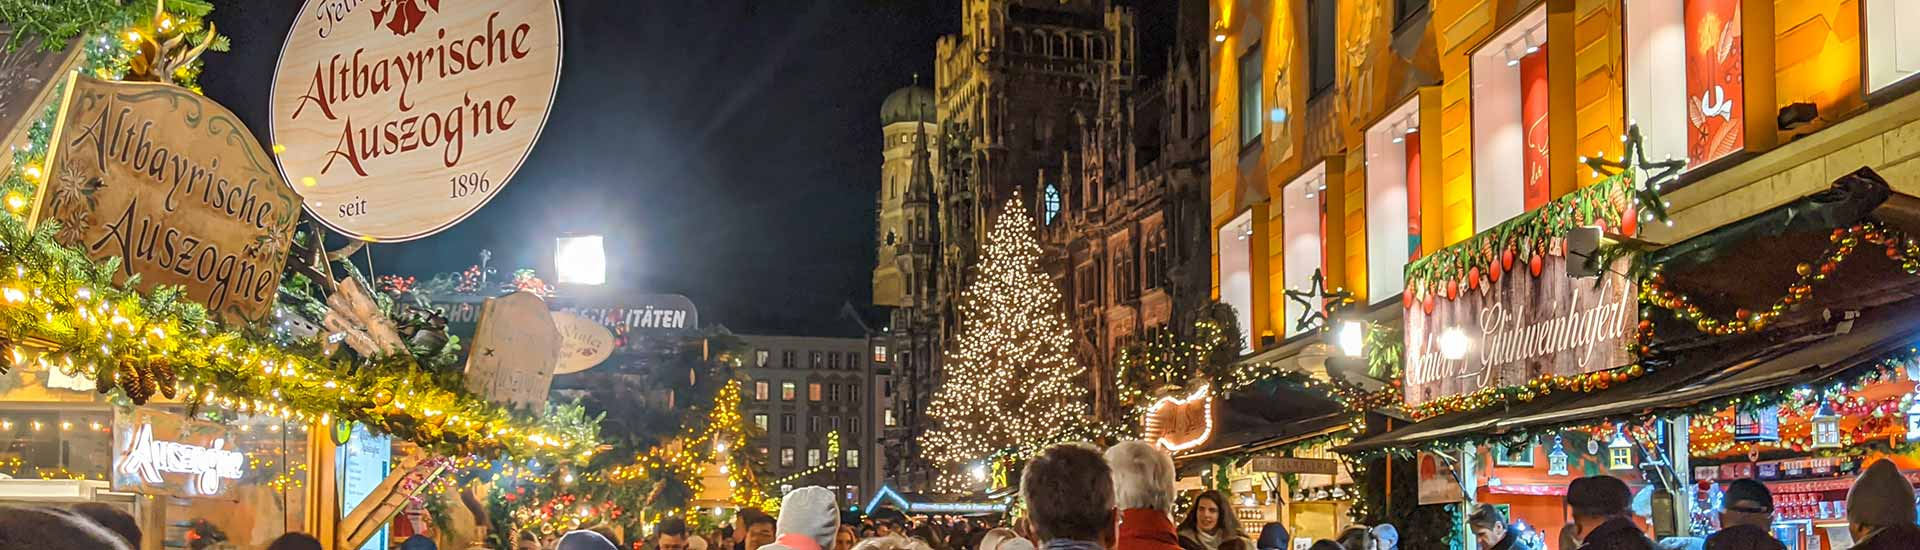 Christmas Eve In Munich 2020 Best Munich Christmas Markets (2020 Dates and Location)